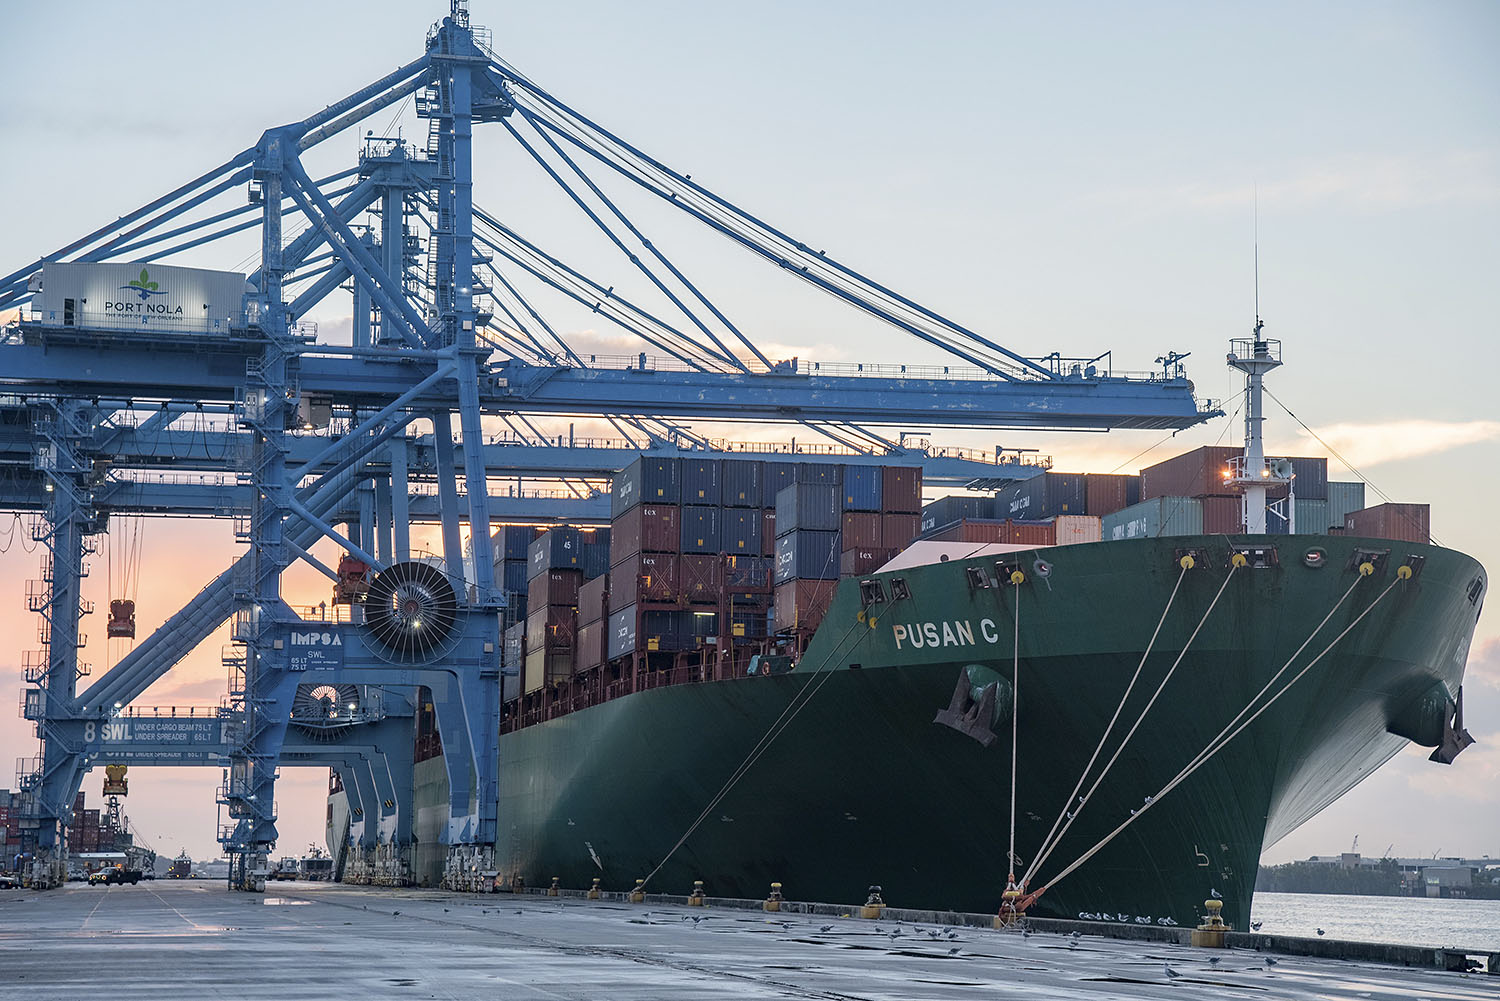 The CMA CGM Pusan C vessel, one of the largest vessels to-date that calls at Port NOLA's current container facility at the Napoleon Avenue Container Terminal. (Photo courtesy of Port NOLA)